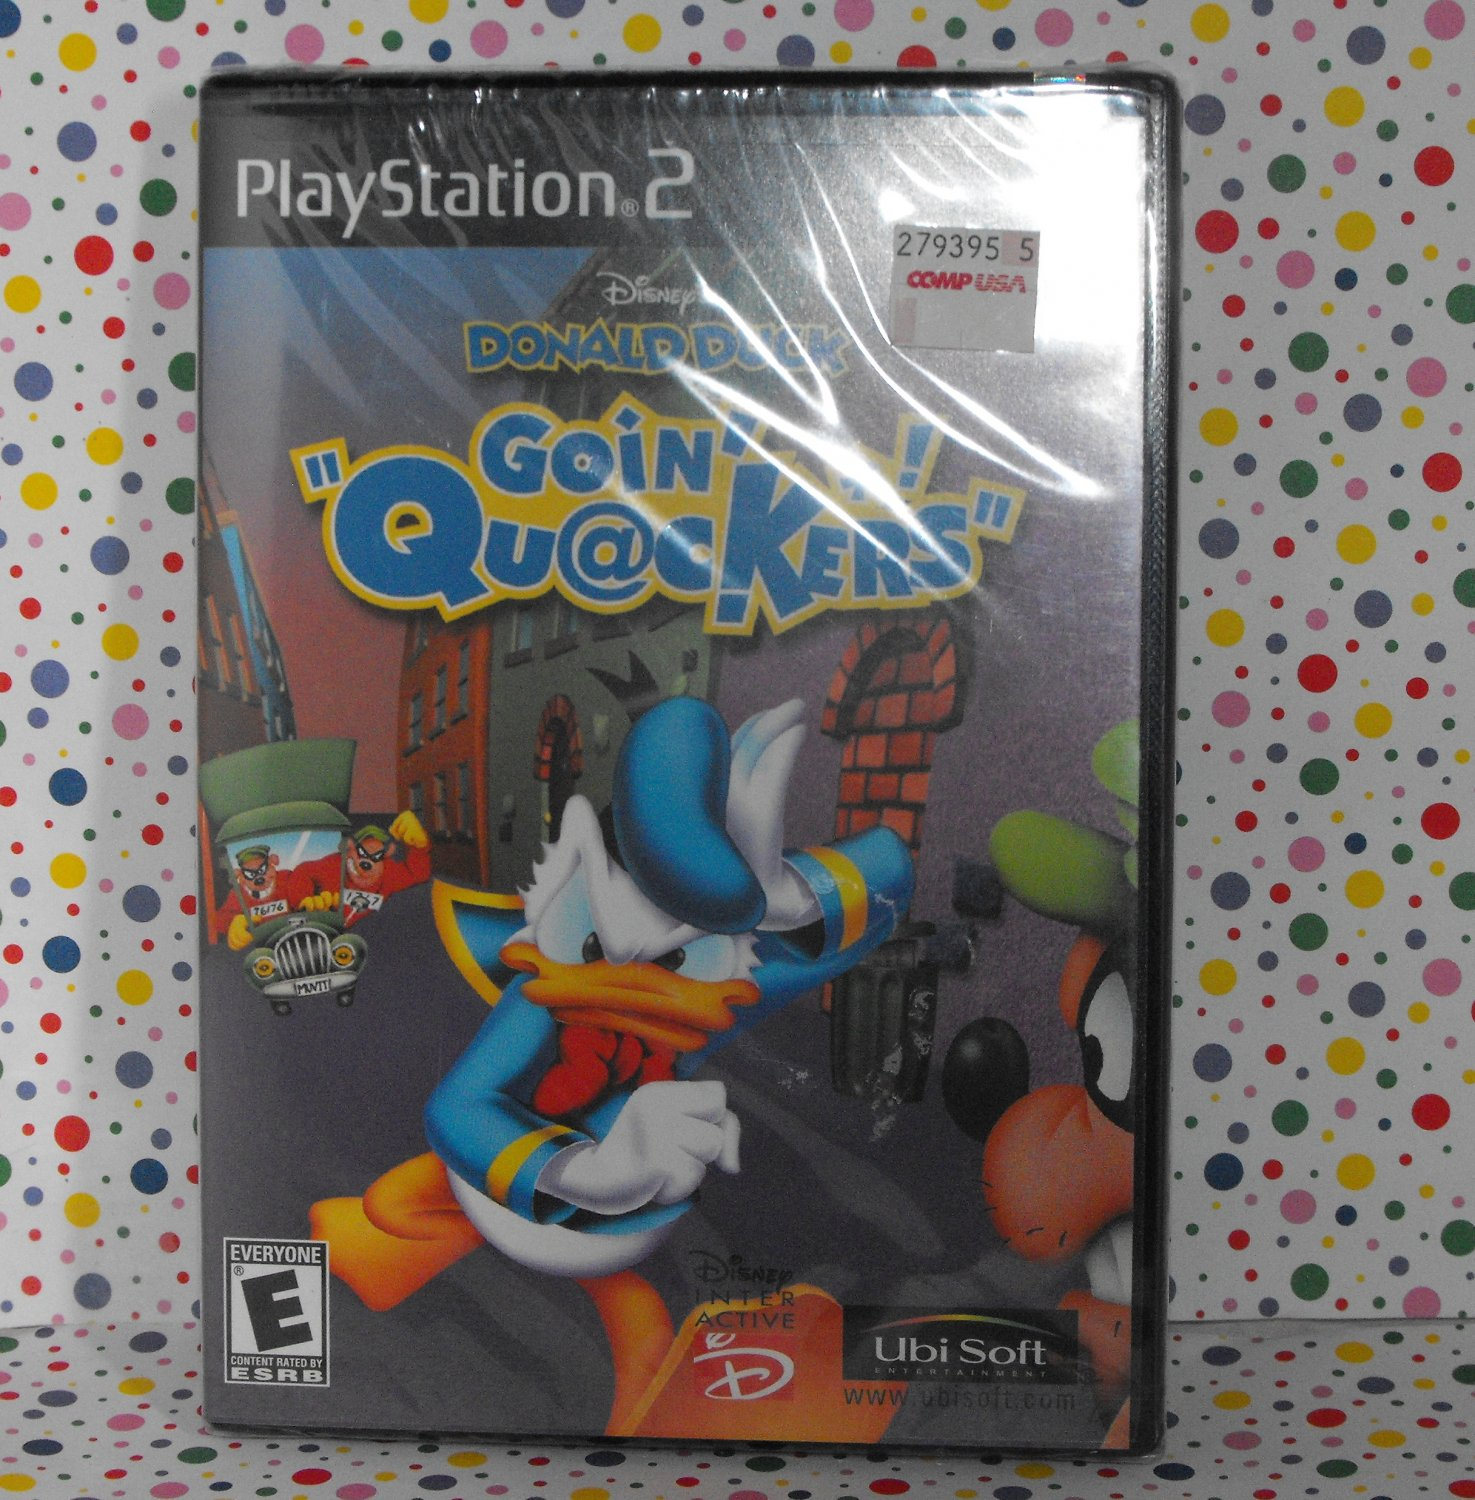 *12/15*SOLD~Donald Duck: Goin' Quackers Sony PlayStation 2 PS2 Game